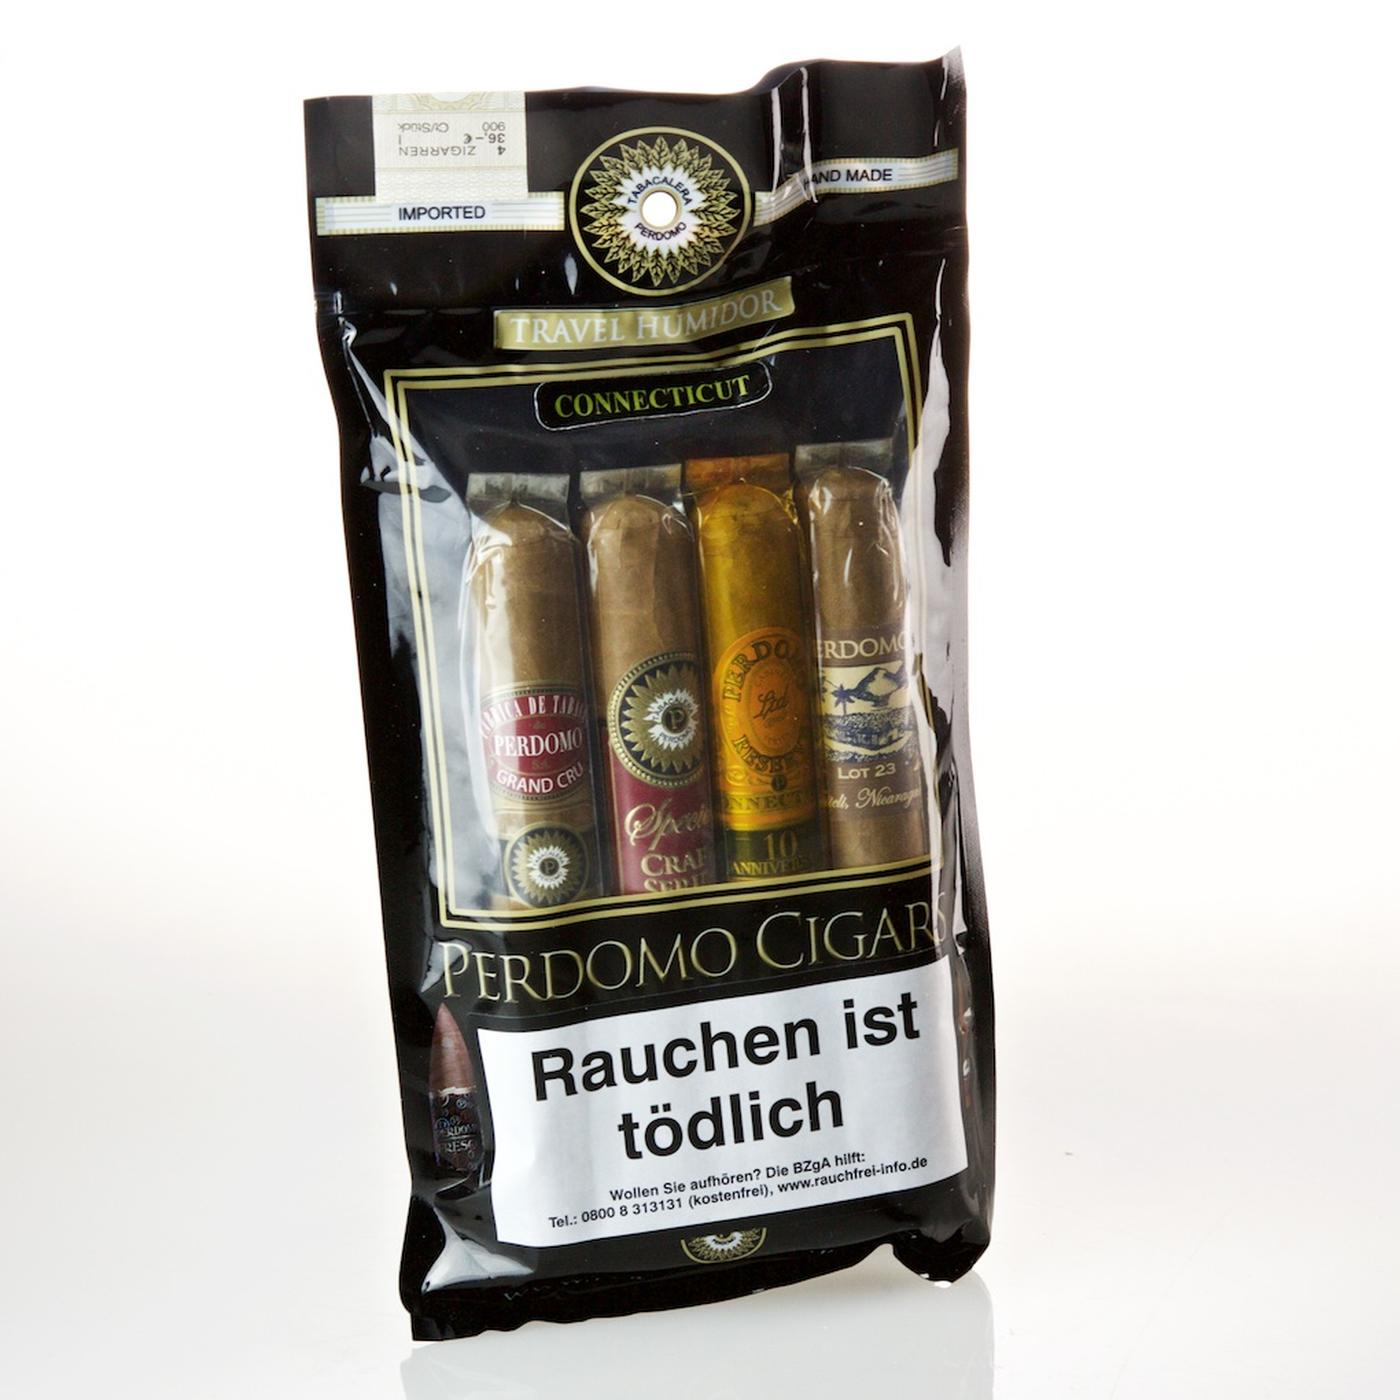 Perdomo Travel Humidor Connecticut 4er-Pack